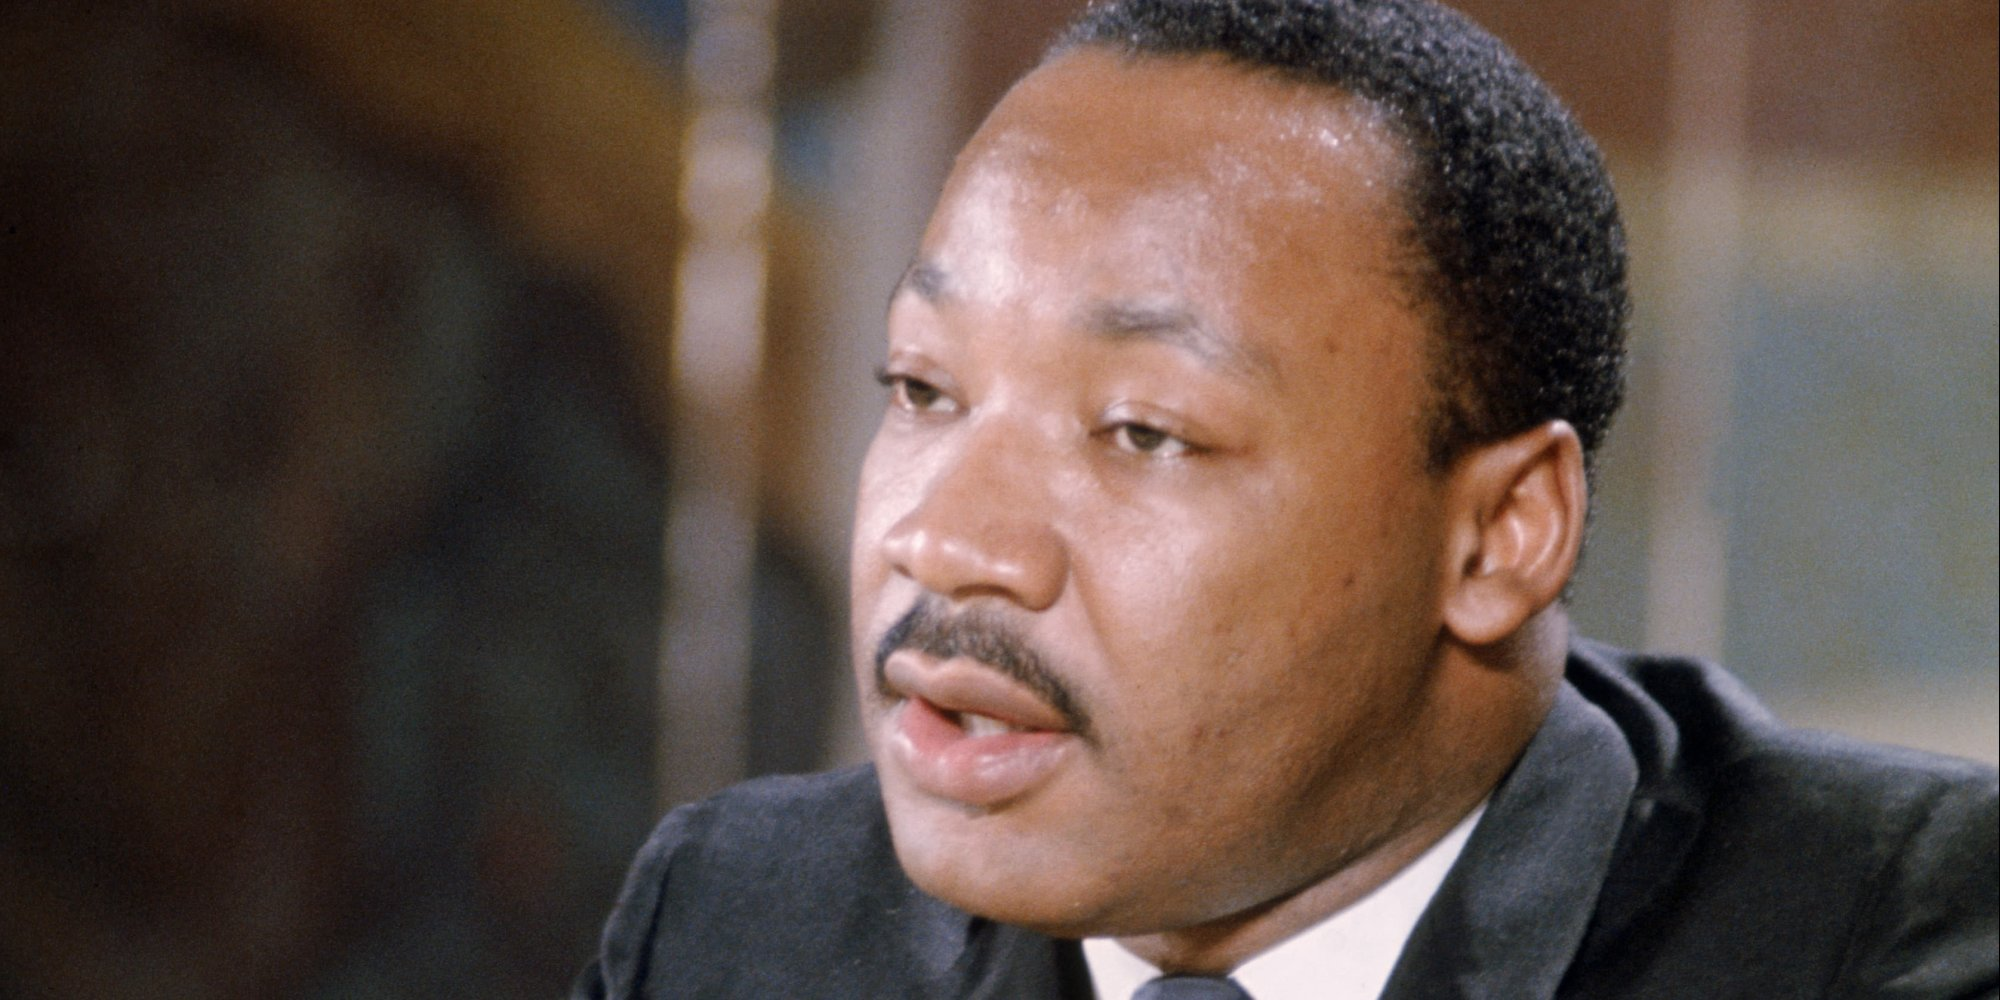 Are We Living Dr. King's Dream, Or Just Talking About It ...